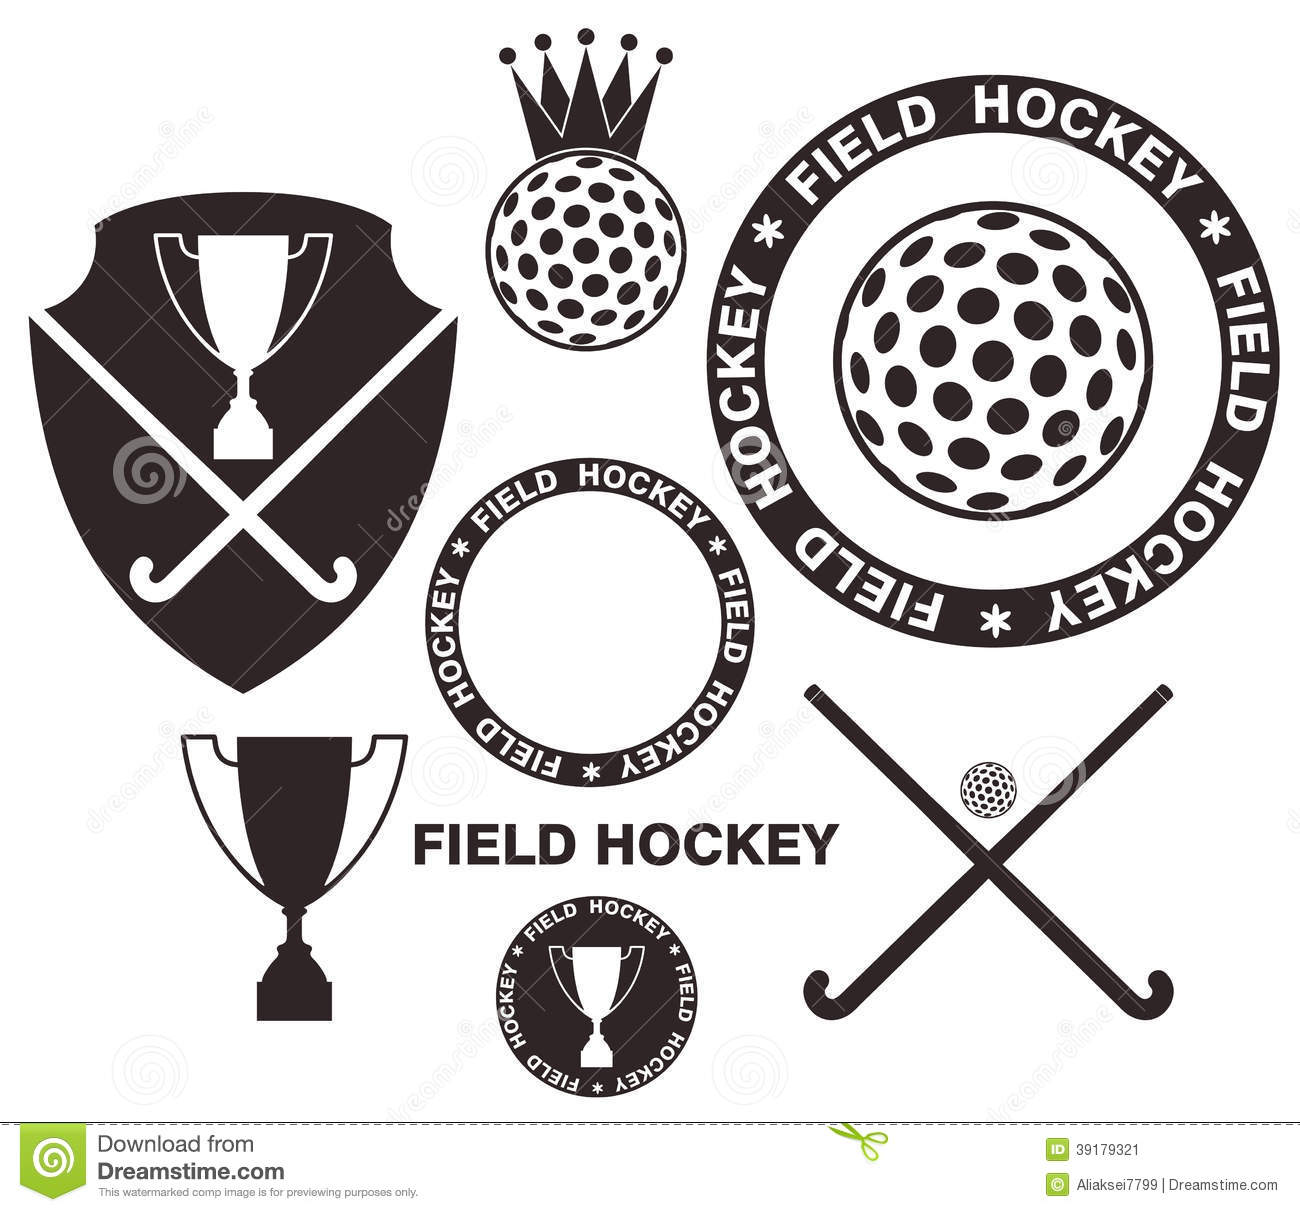 Field Hockey Stock Vector - Image: 39179321